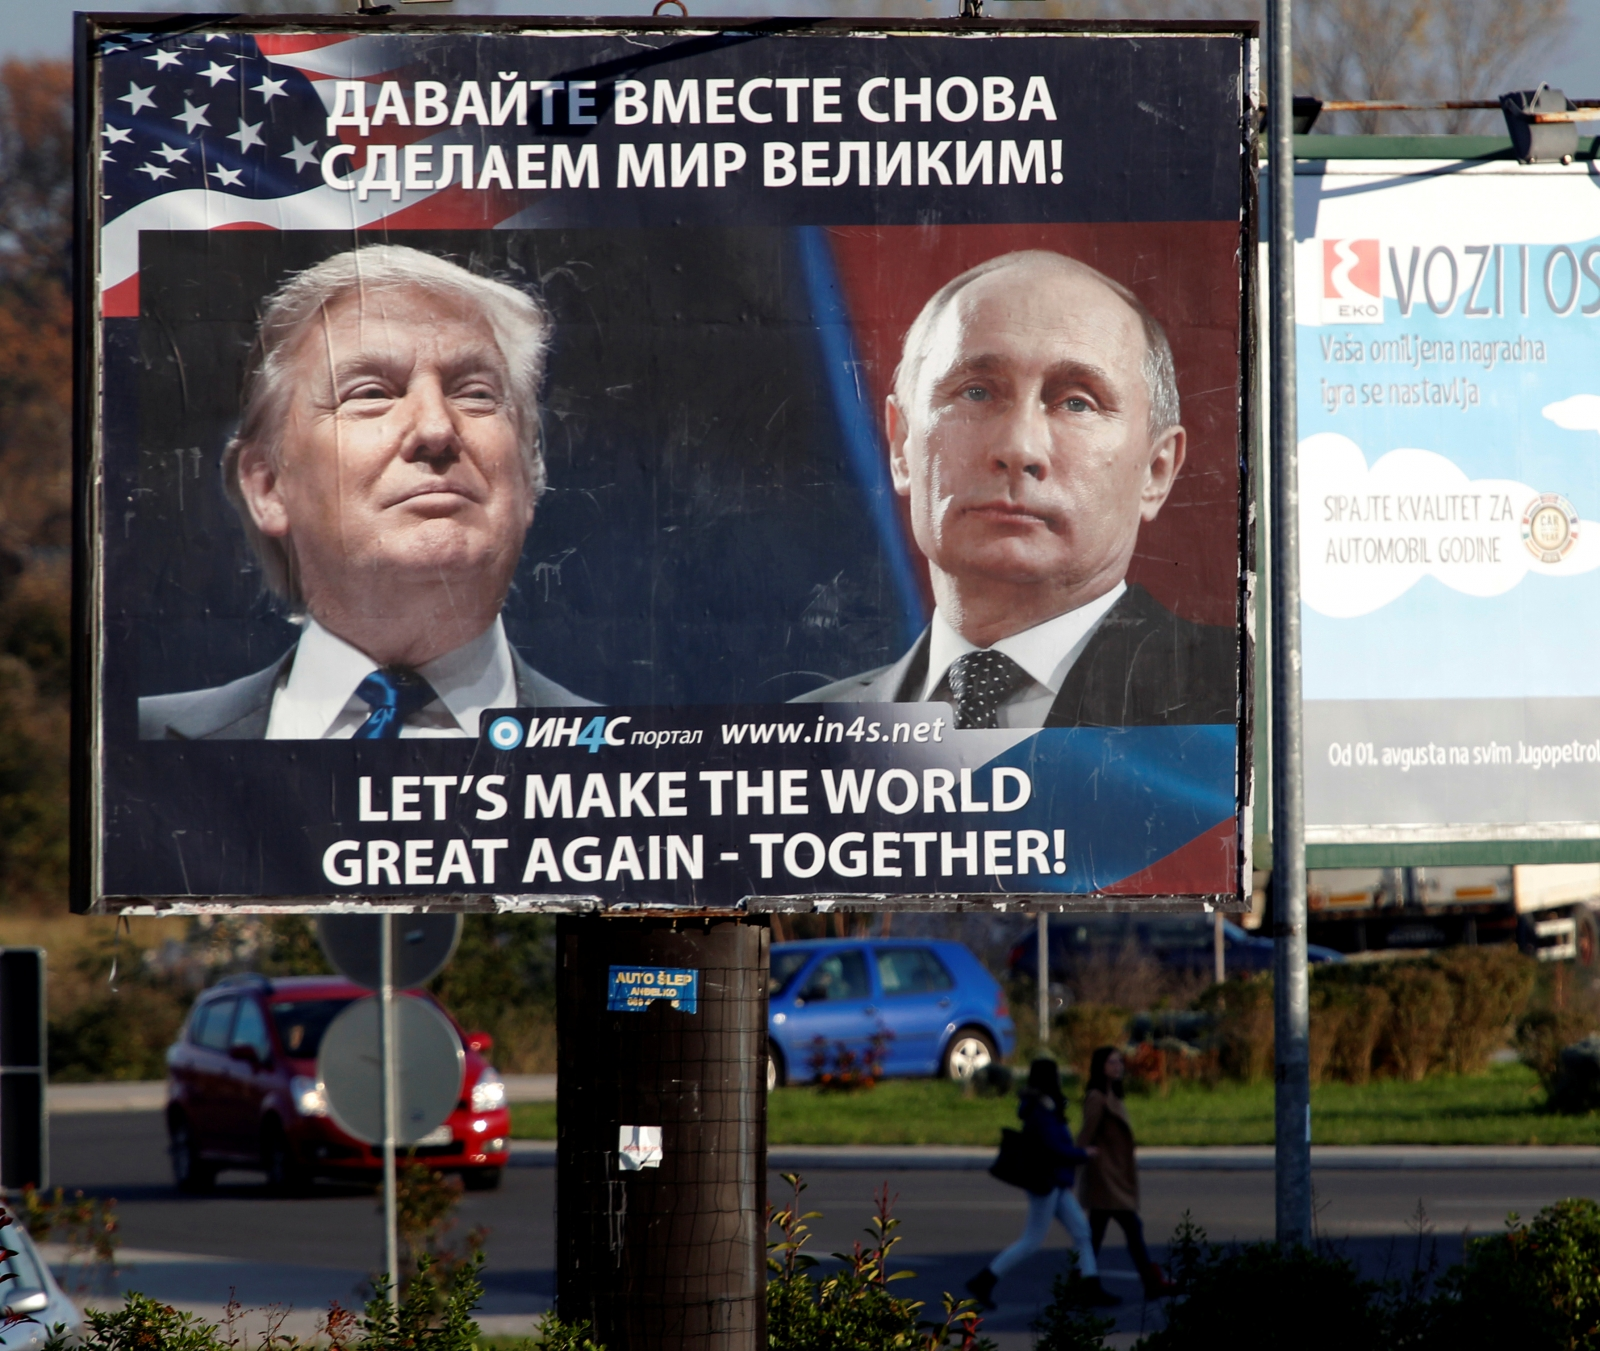 Pedestrians cross the street behind a billboard showing a pictures of US president-elect Donald Trump and Russian President Vladimir Putin in Danilovgrad, Montenegro,